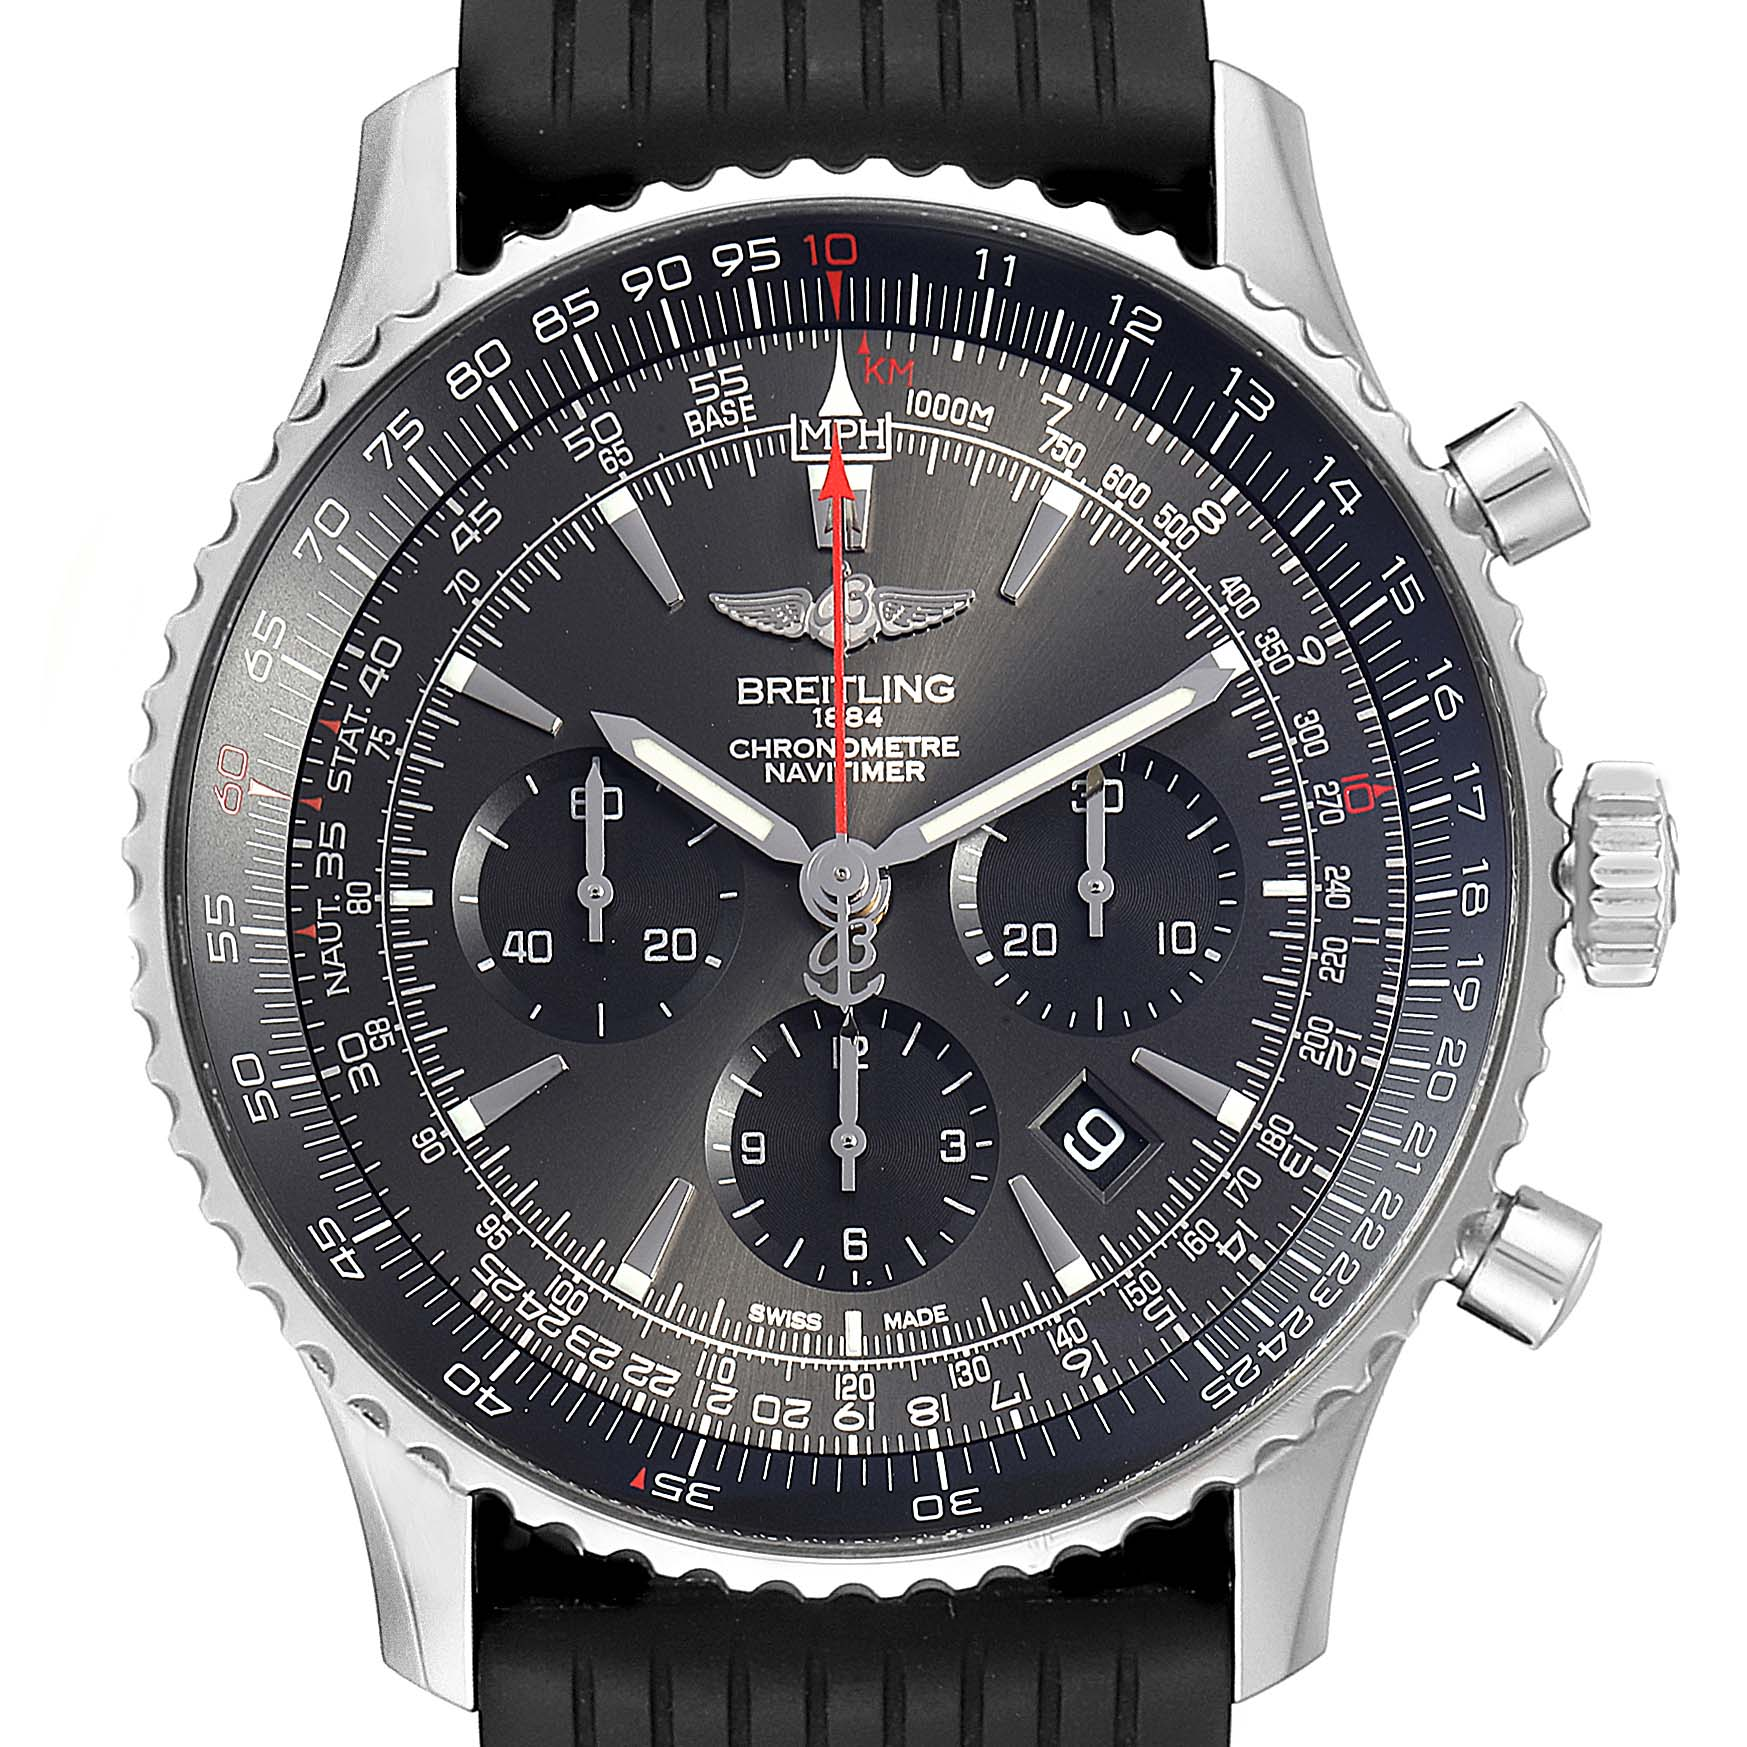 Breitling Navitimer 01 Stratos Gray Dial Limited Edition Watch AB0127 Box Card